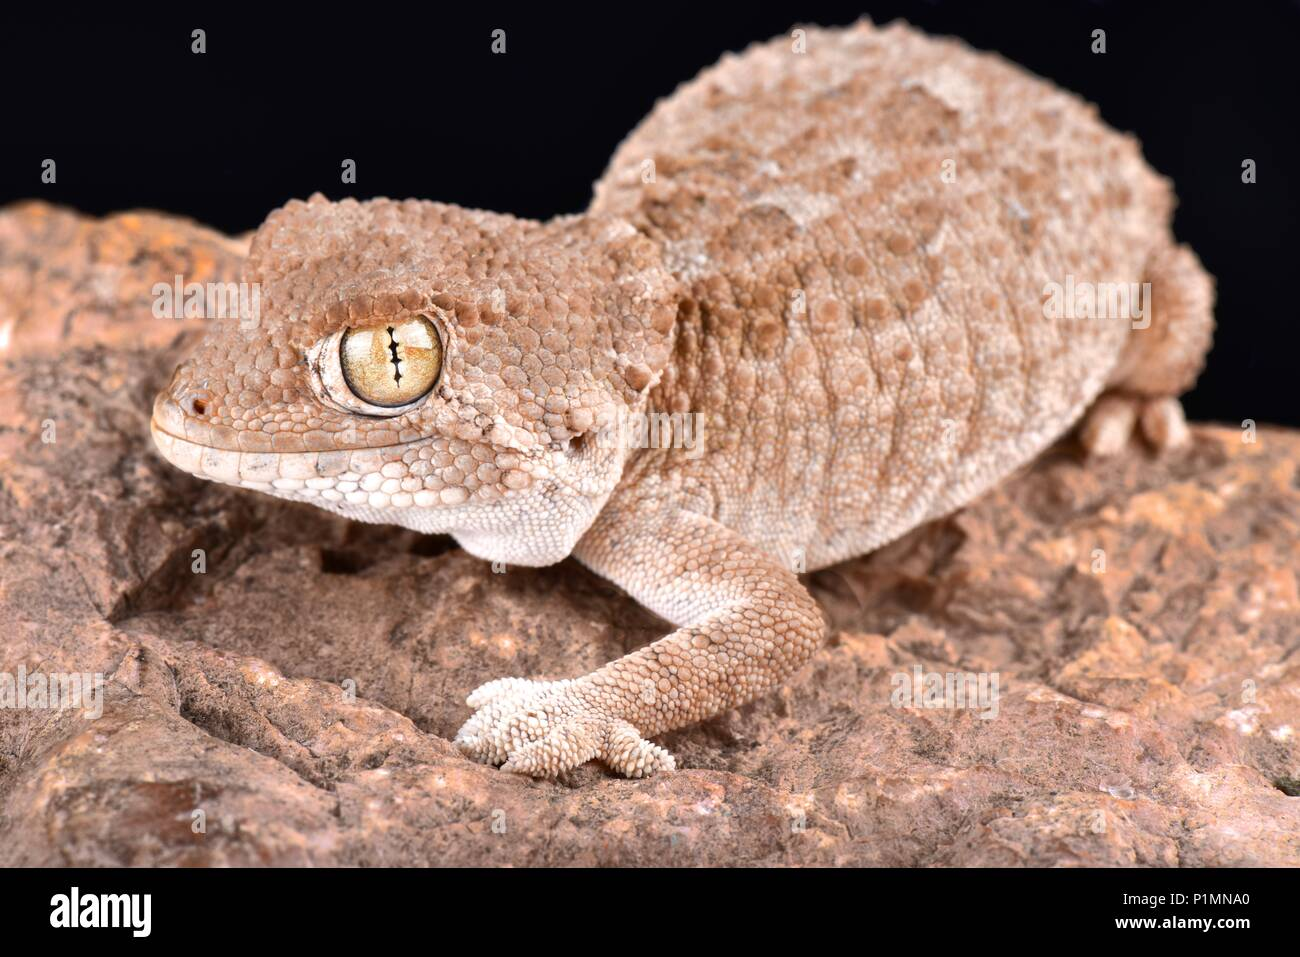 The helmeted gecko (Tarentola chazaliae) is native to Western Sahara, Mauritania and Morocco in zones near the coast where the humidity is high. - Stock Image